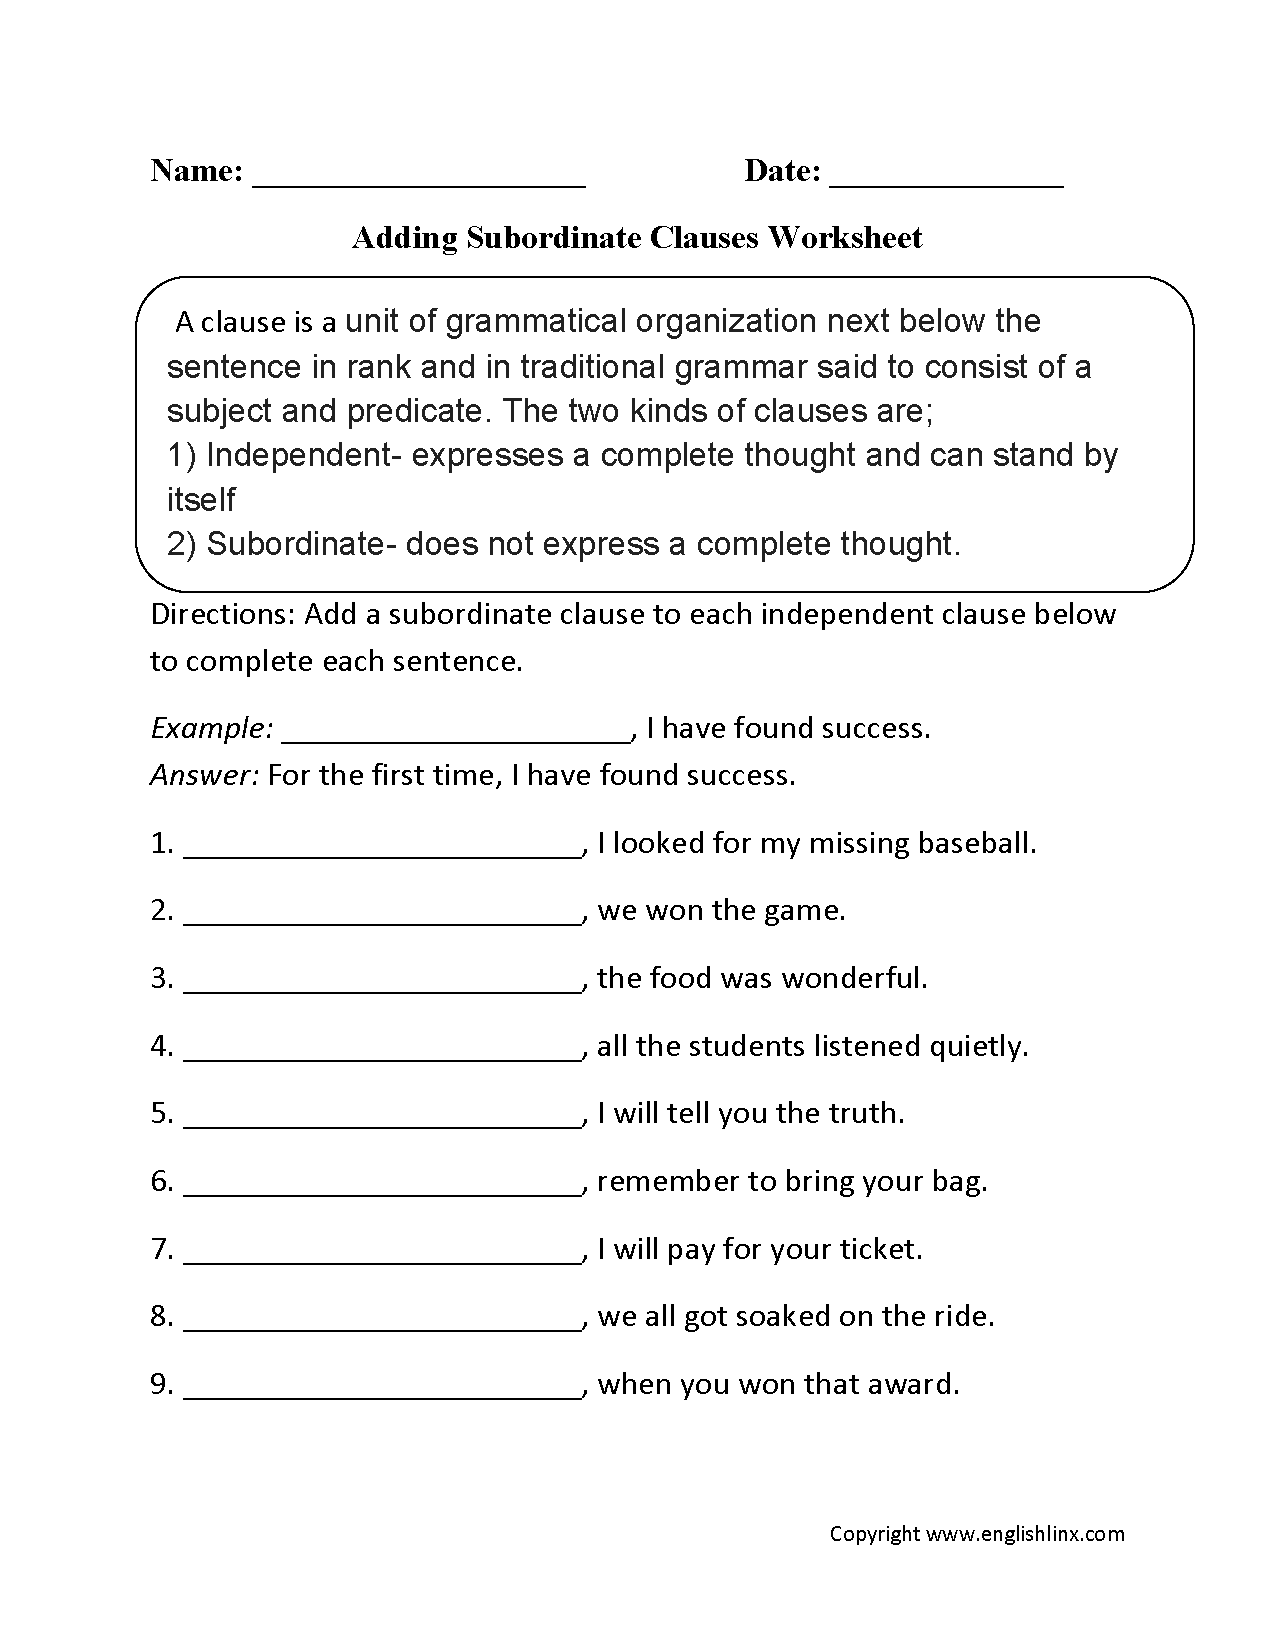 Worksheet Independent And Dependent Clauses Worksheet englishlinx com clauses worksheets adding subordinate worksheet